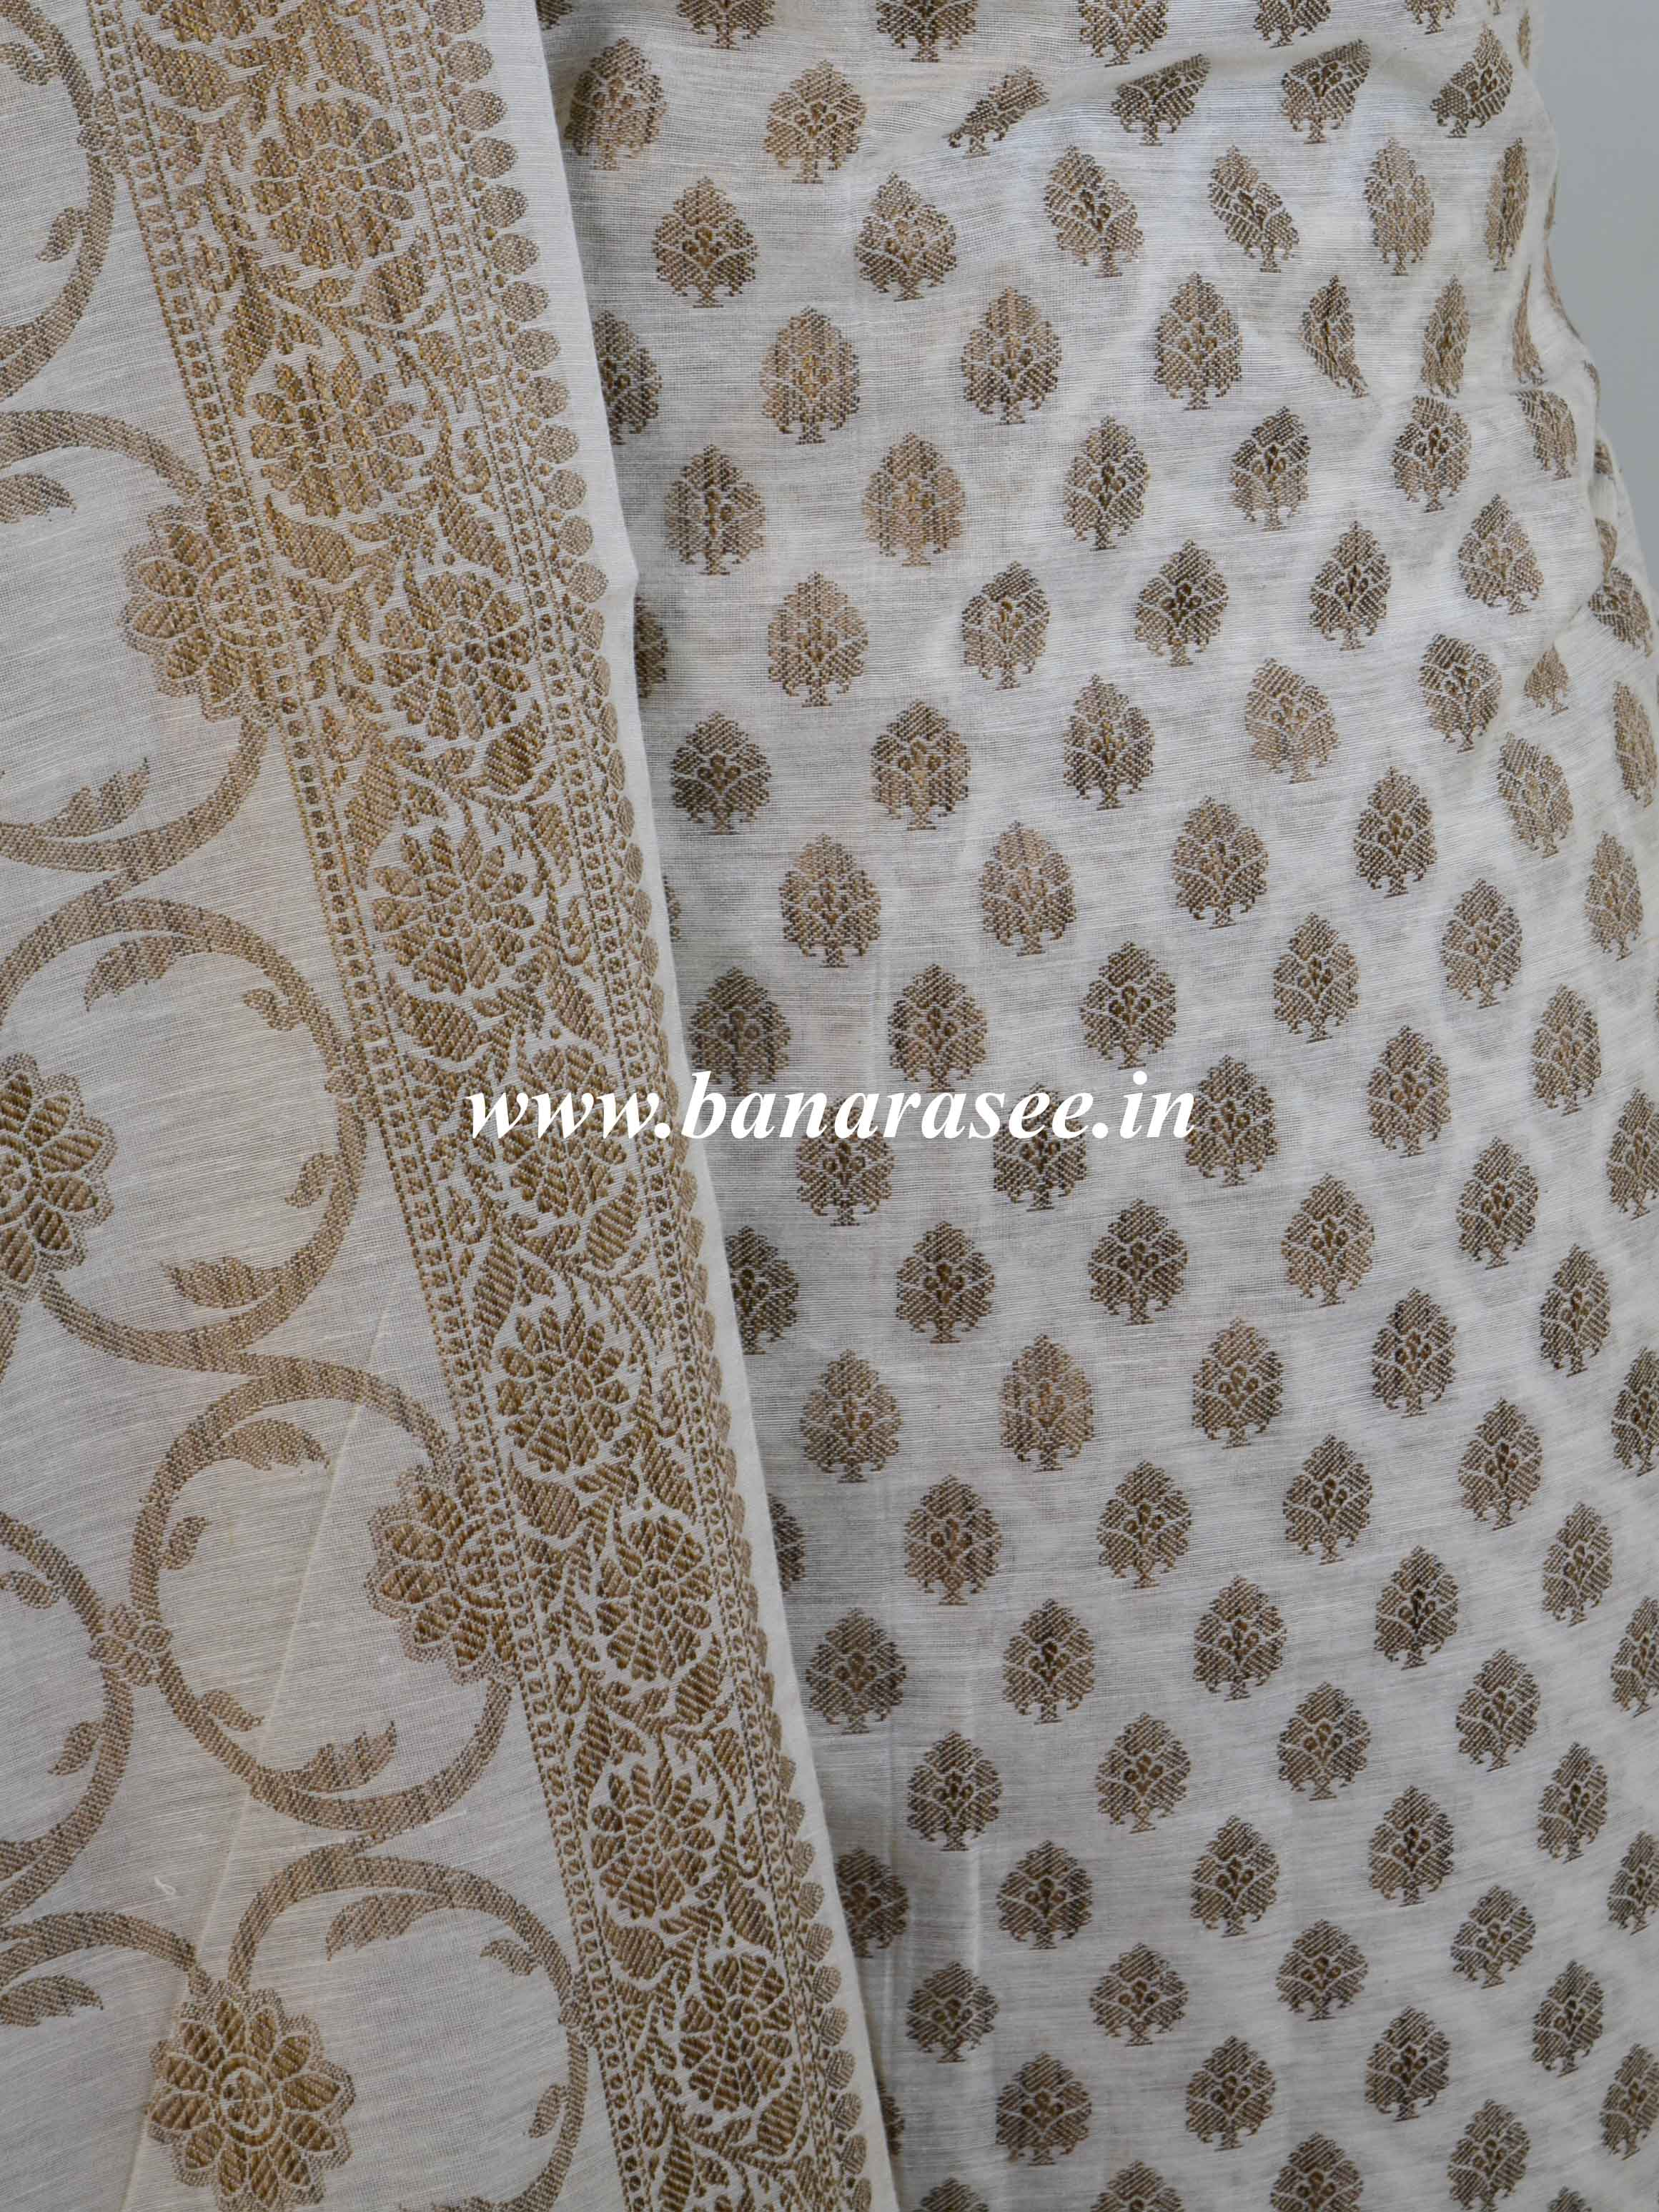 Banarasee Cotton Mix Ghichha Work Salwar Kameez Fabric With Dupatta-Off White